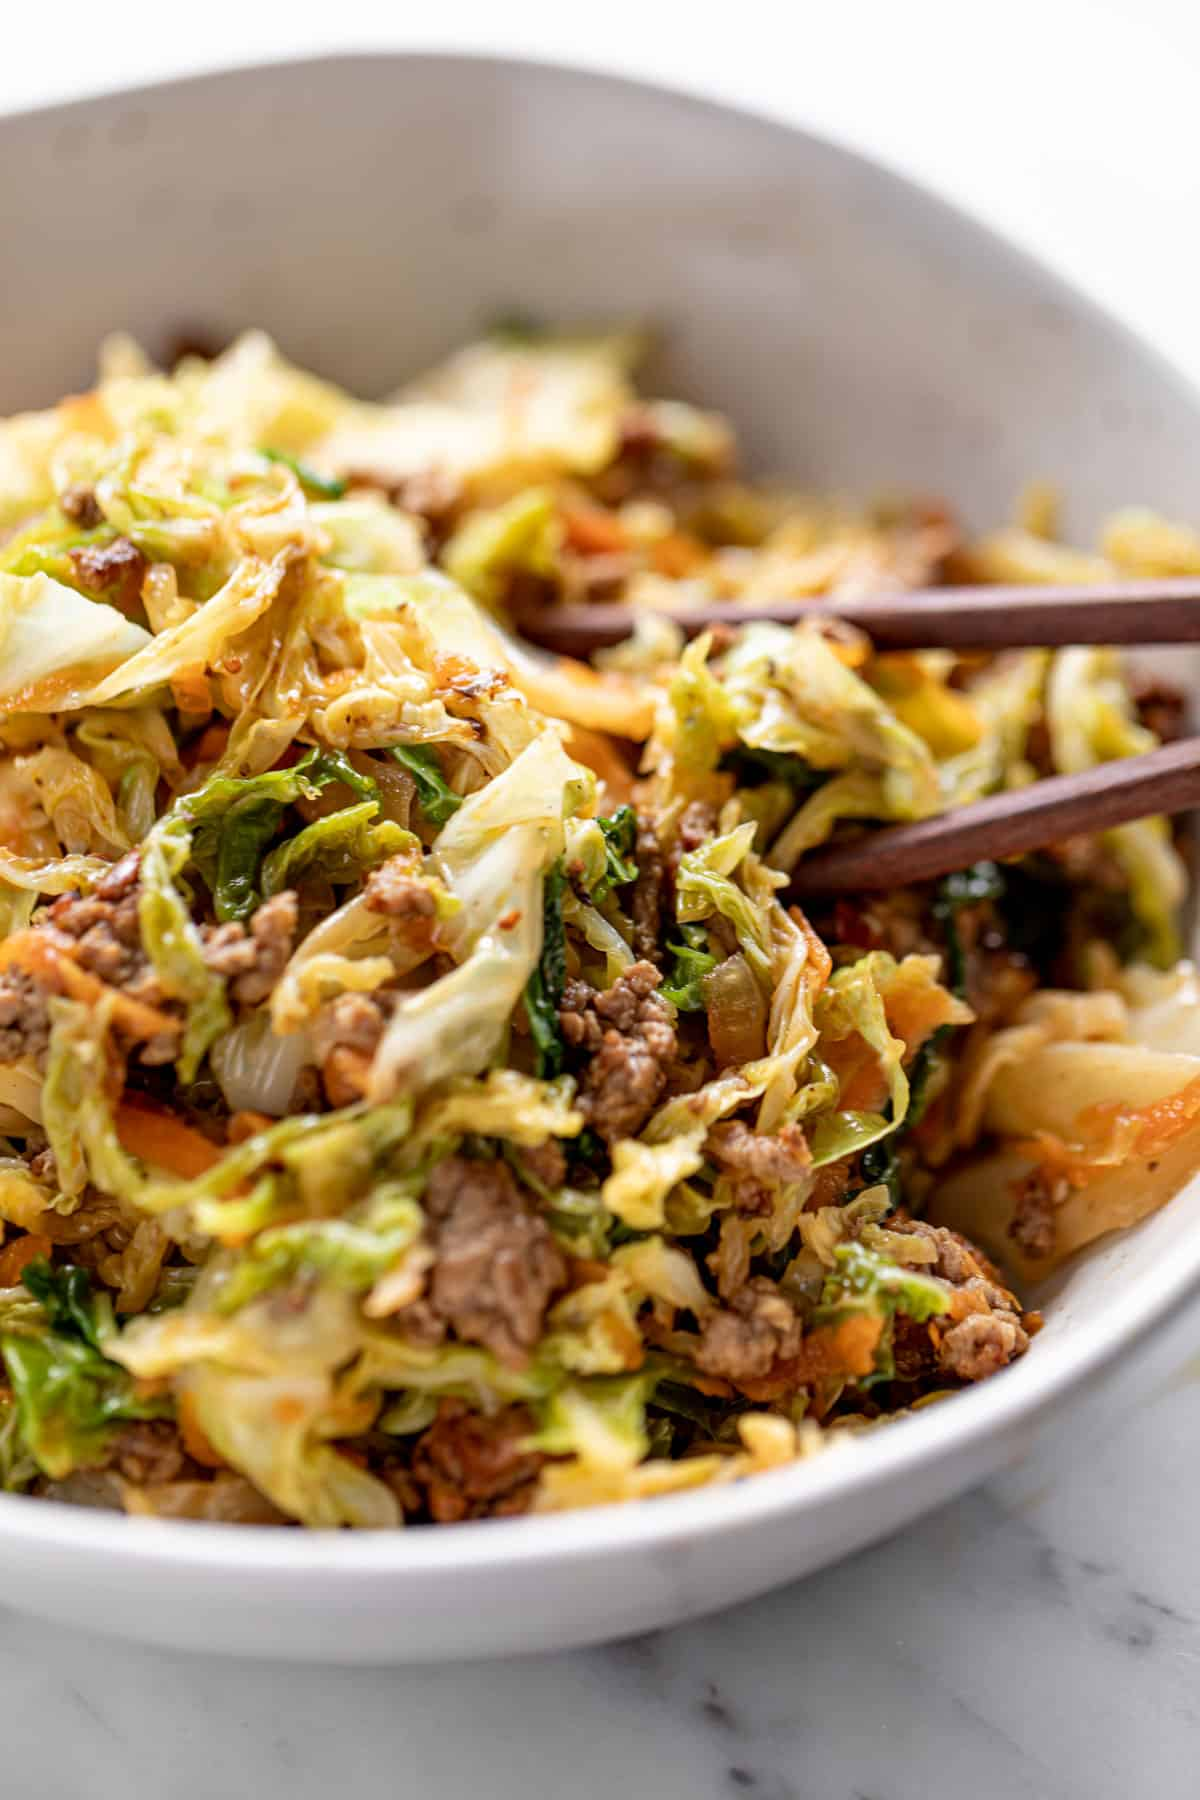 Ground Beef in a bowl with cabbage, served with chop sticks | cafedelites.com